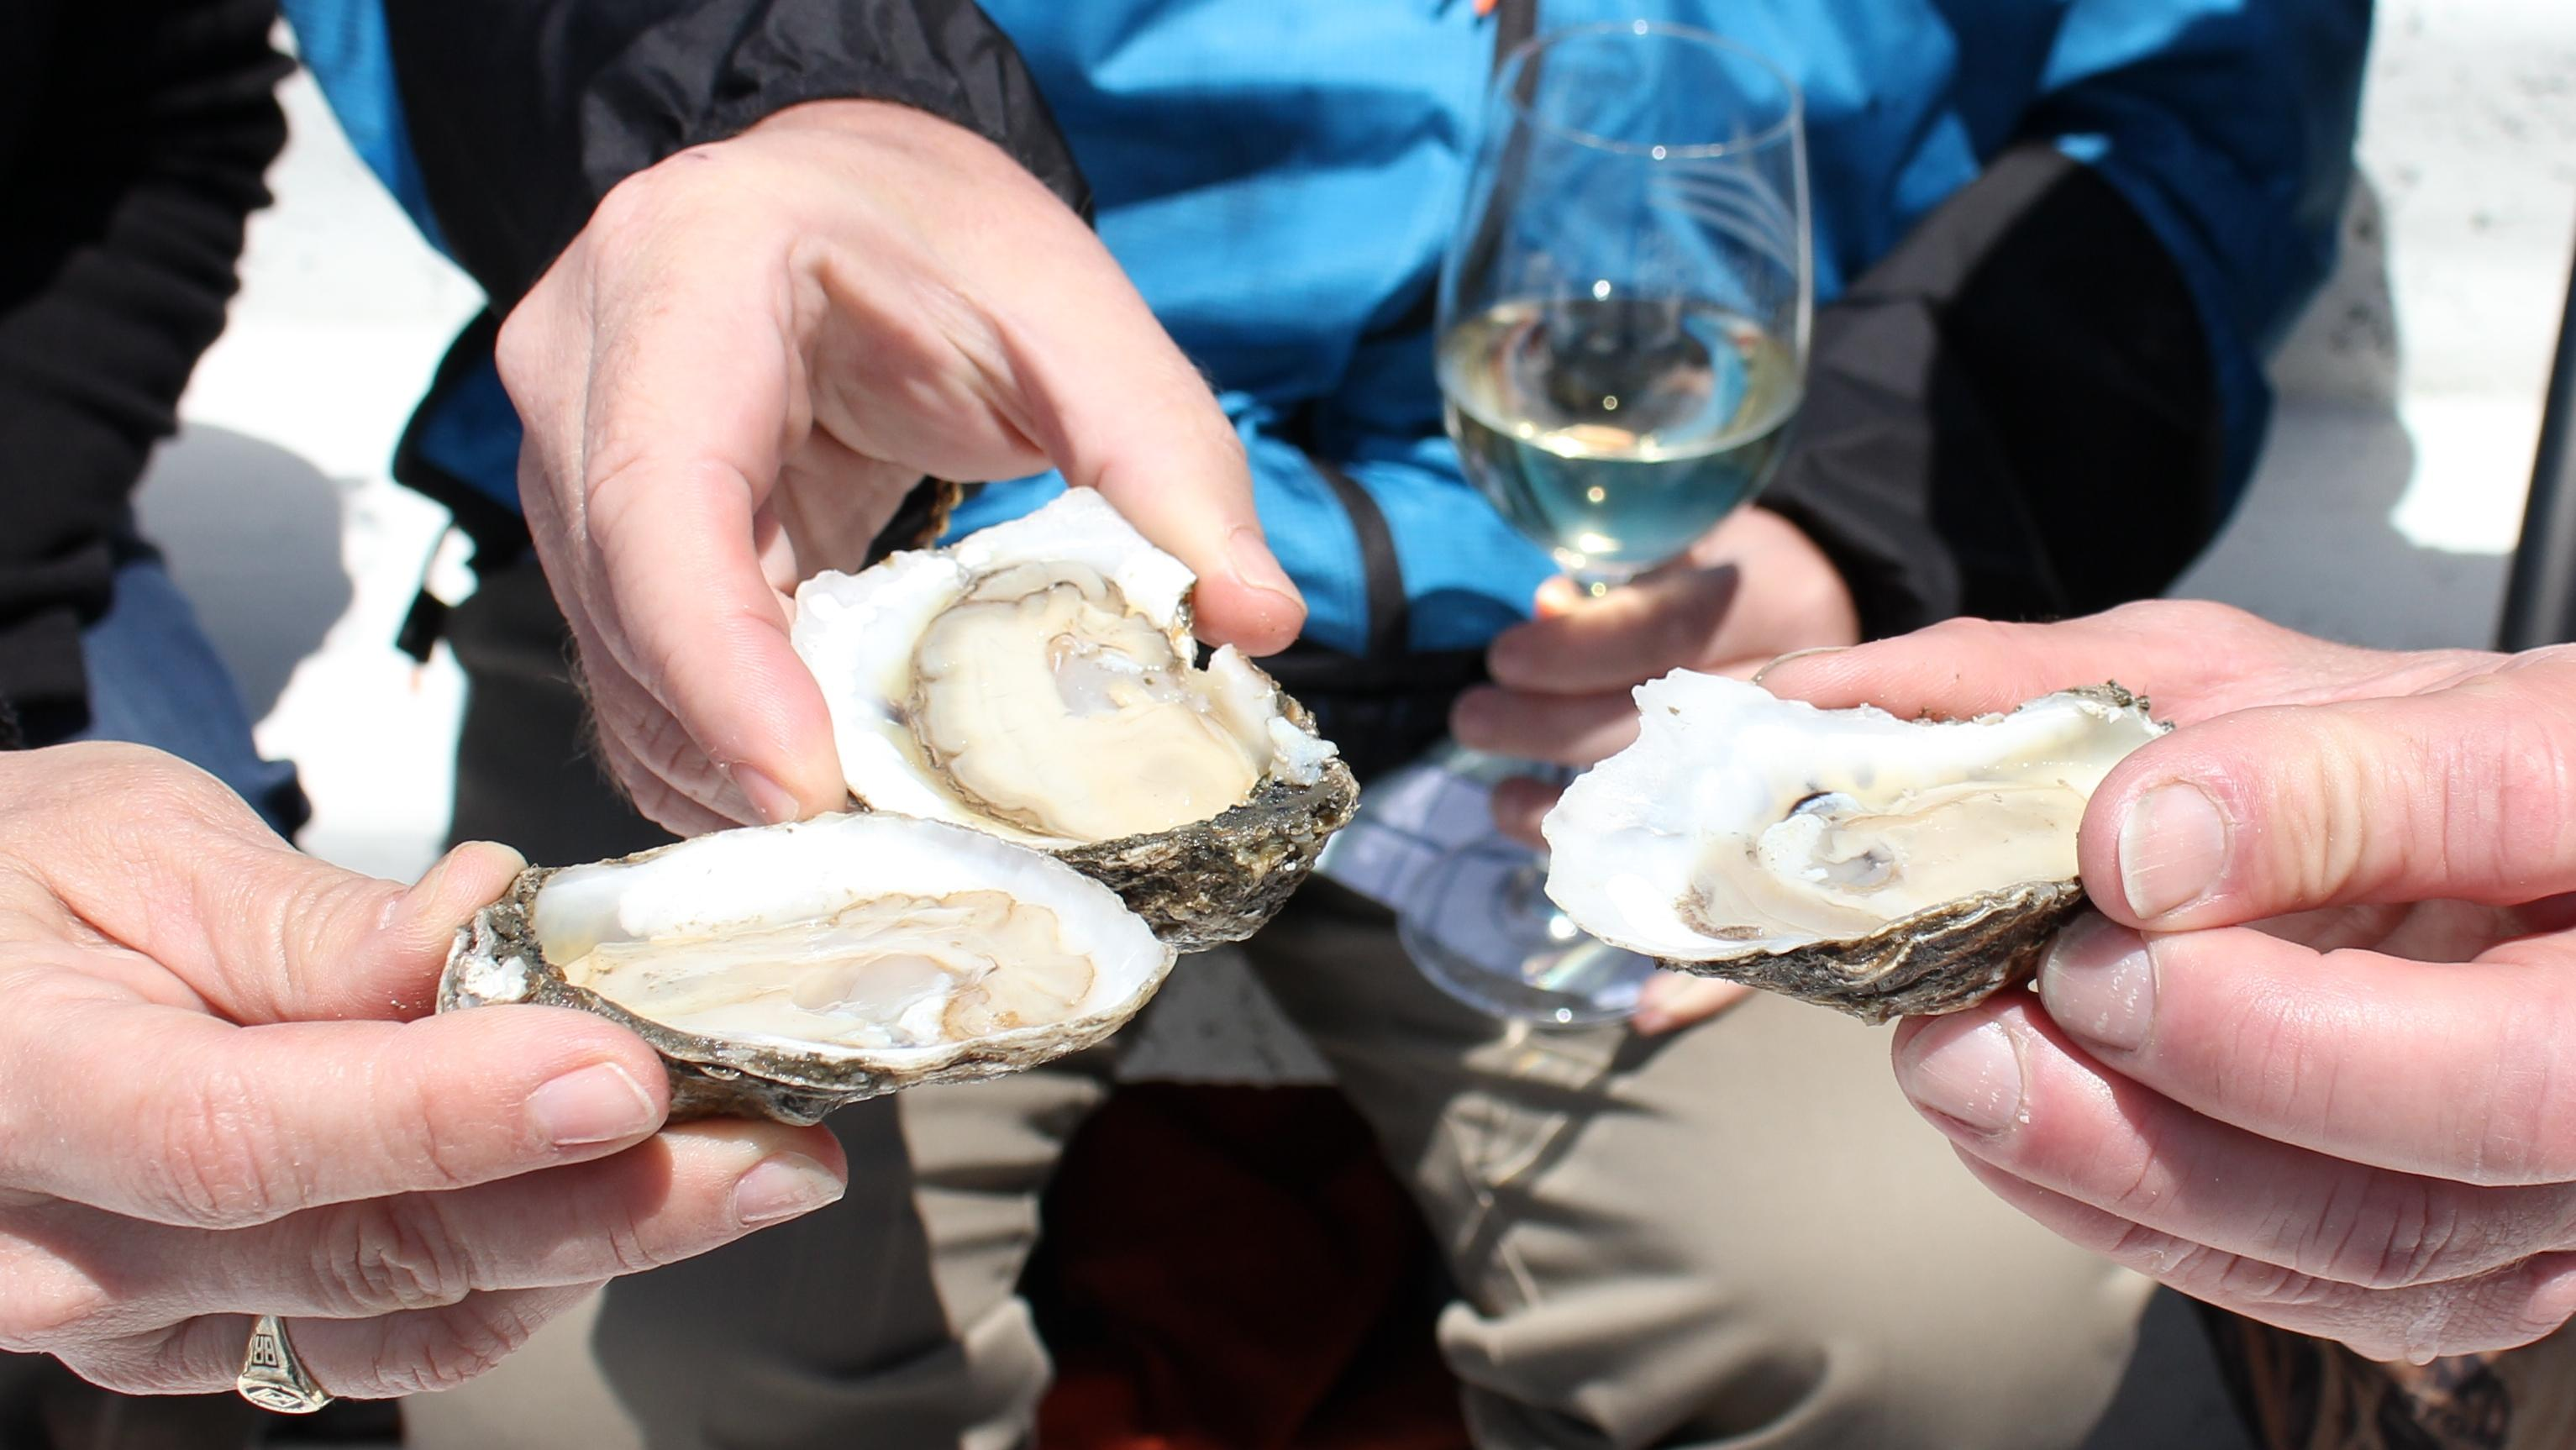 Virginia claims bragging rights to being the largest producer of farm-raised oysters on the East Coast. You'll only be able to experience the flavor profiles and oyster variations if you visit some of the oyster farms, restaurants, and festivals that are especially busy during the fall harvest season. (Image: Courtesy Virginia Oyster Trail)